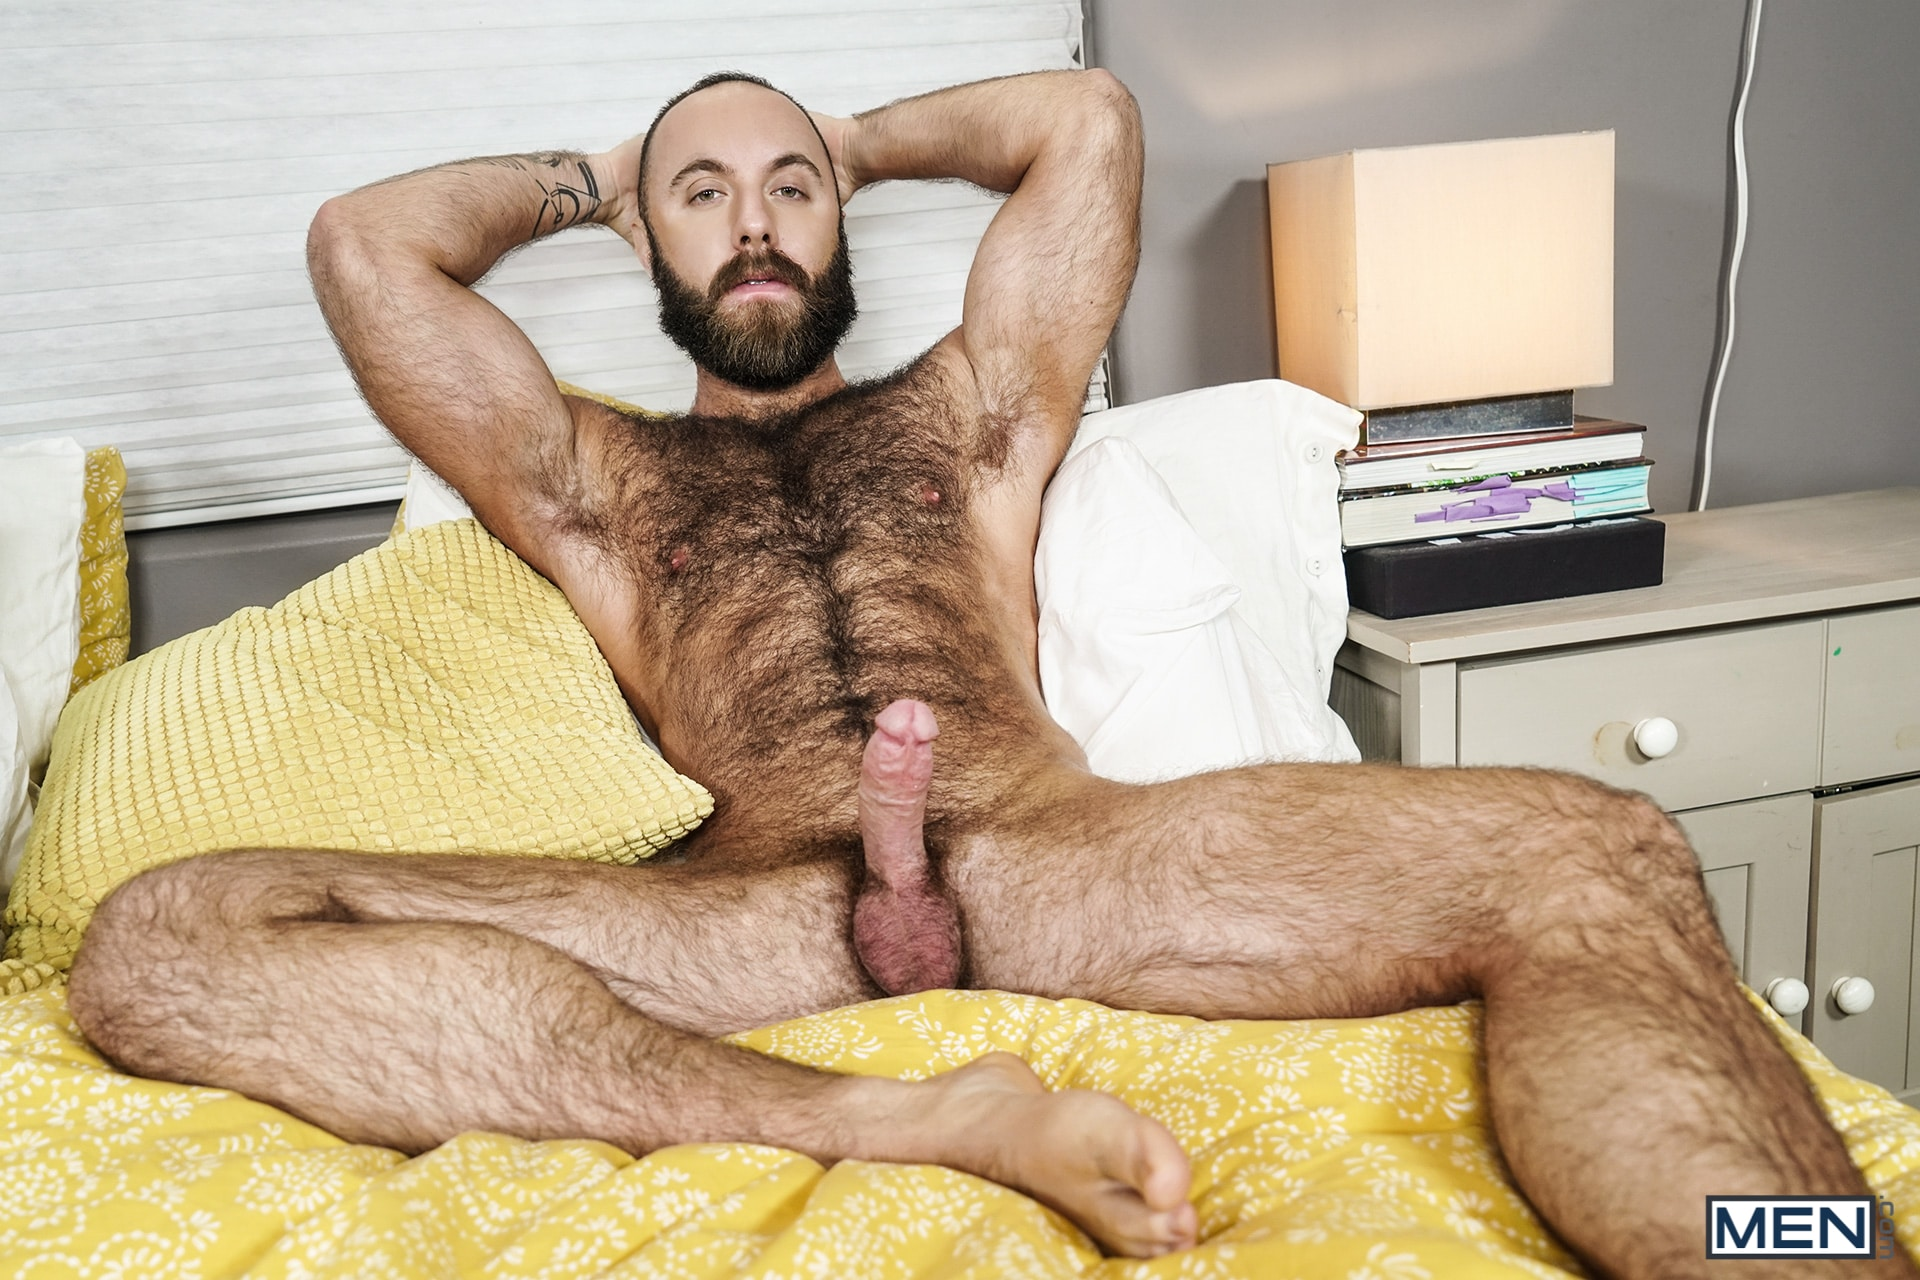 Sexy men muscle hairy naked pics